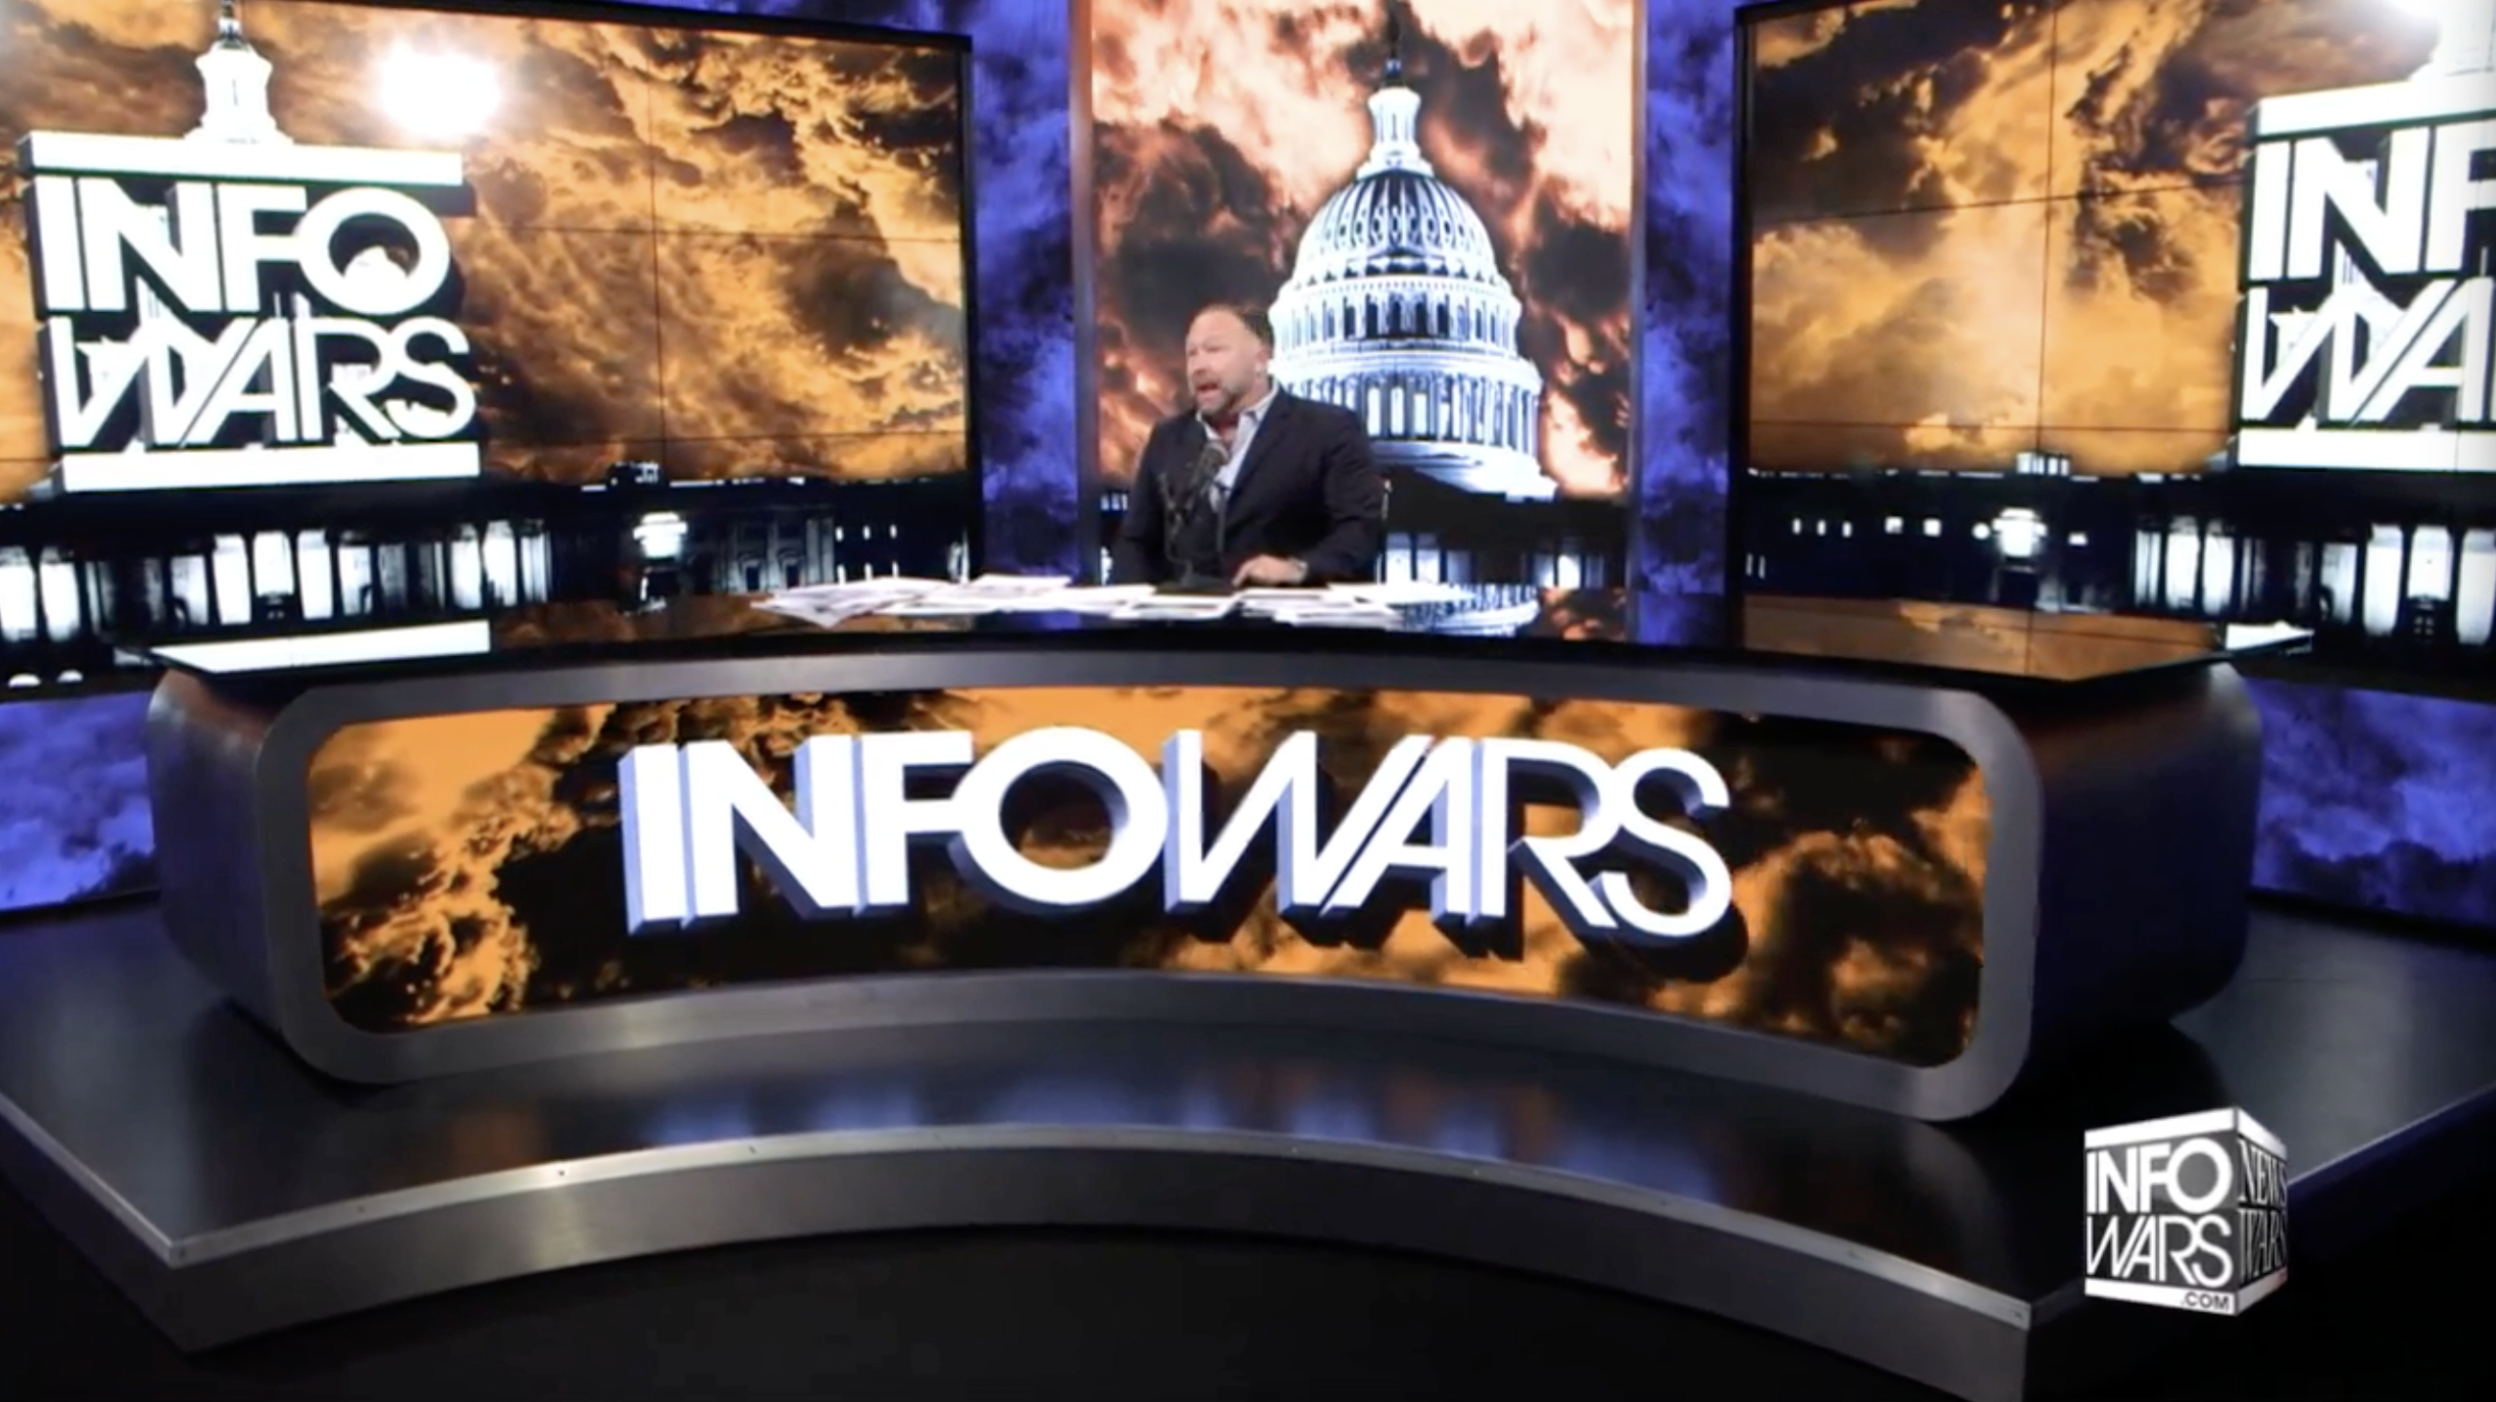 Alex Jones Infowars 6 3 2020